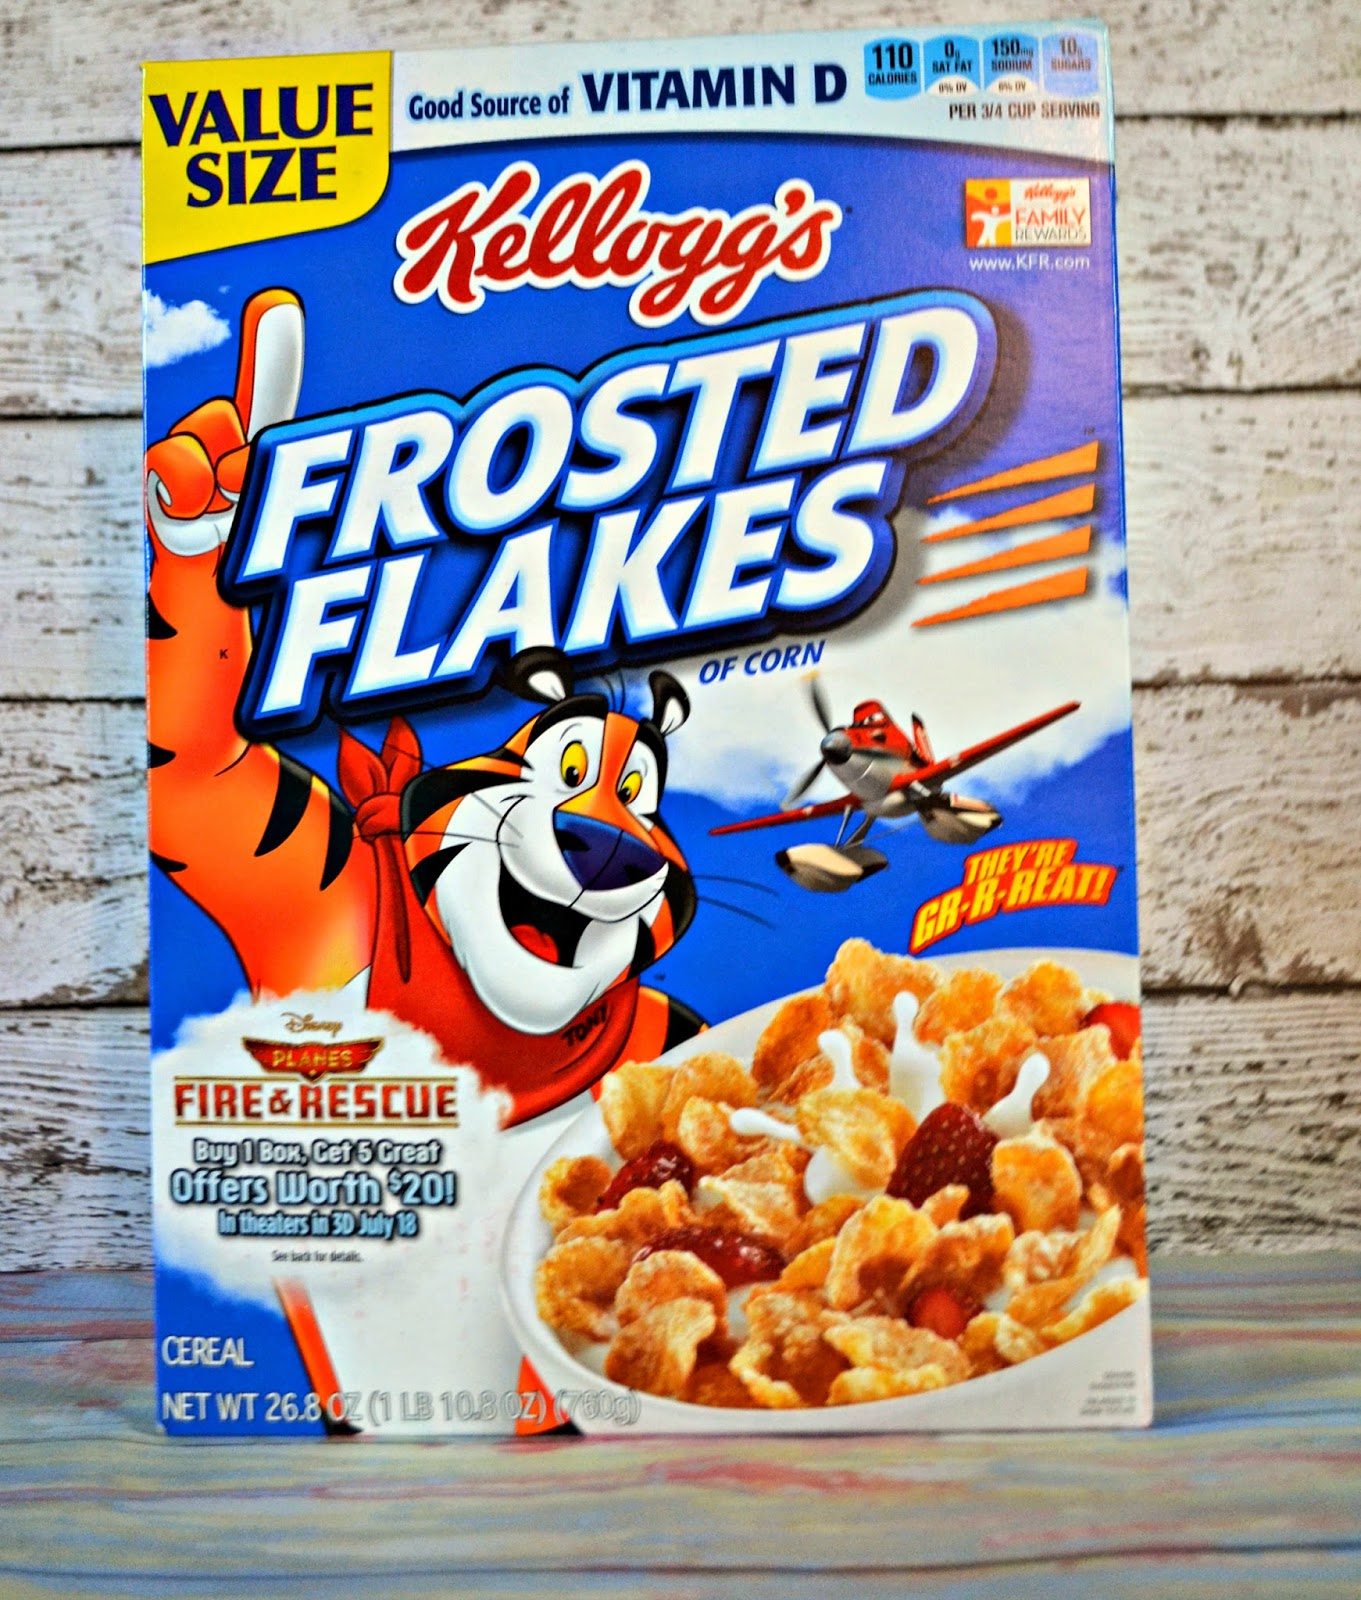 #GoodNightSnack With Kellogg's Frosted Flakes, Fruit And